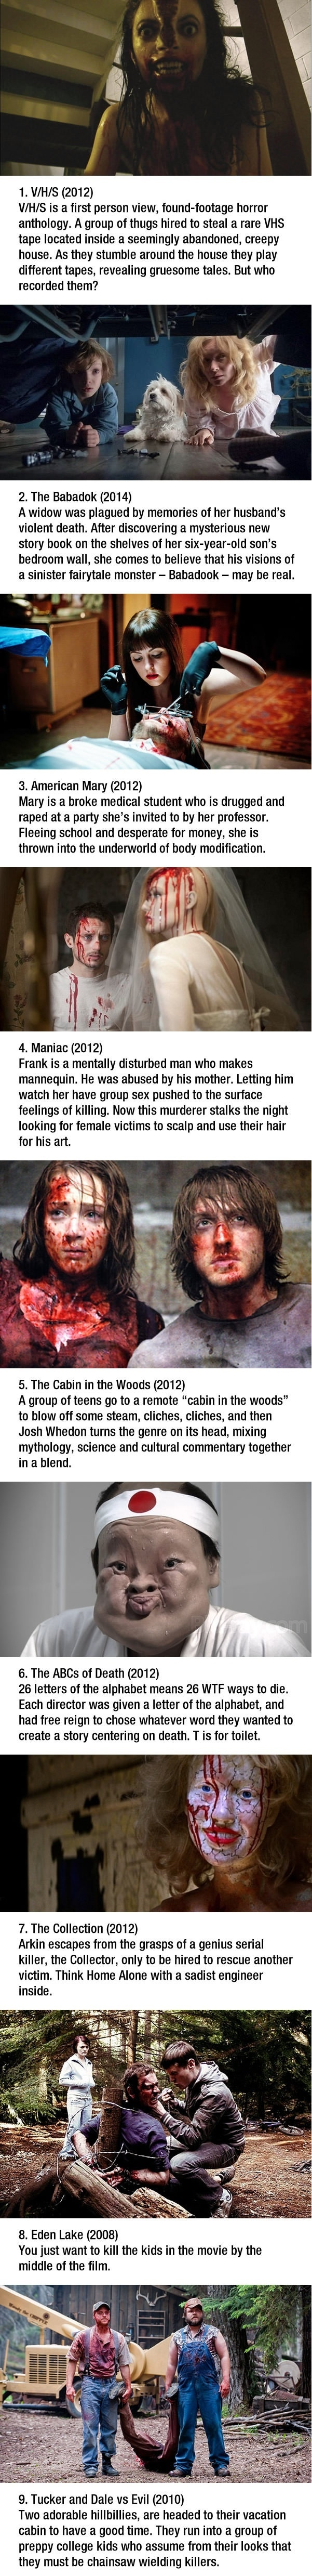 Underappreciated gory horror movies you can't unsee